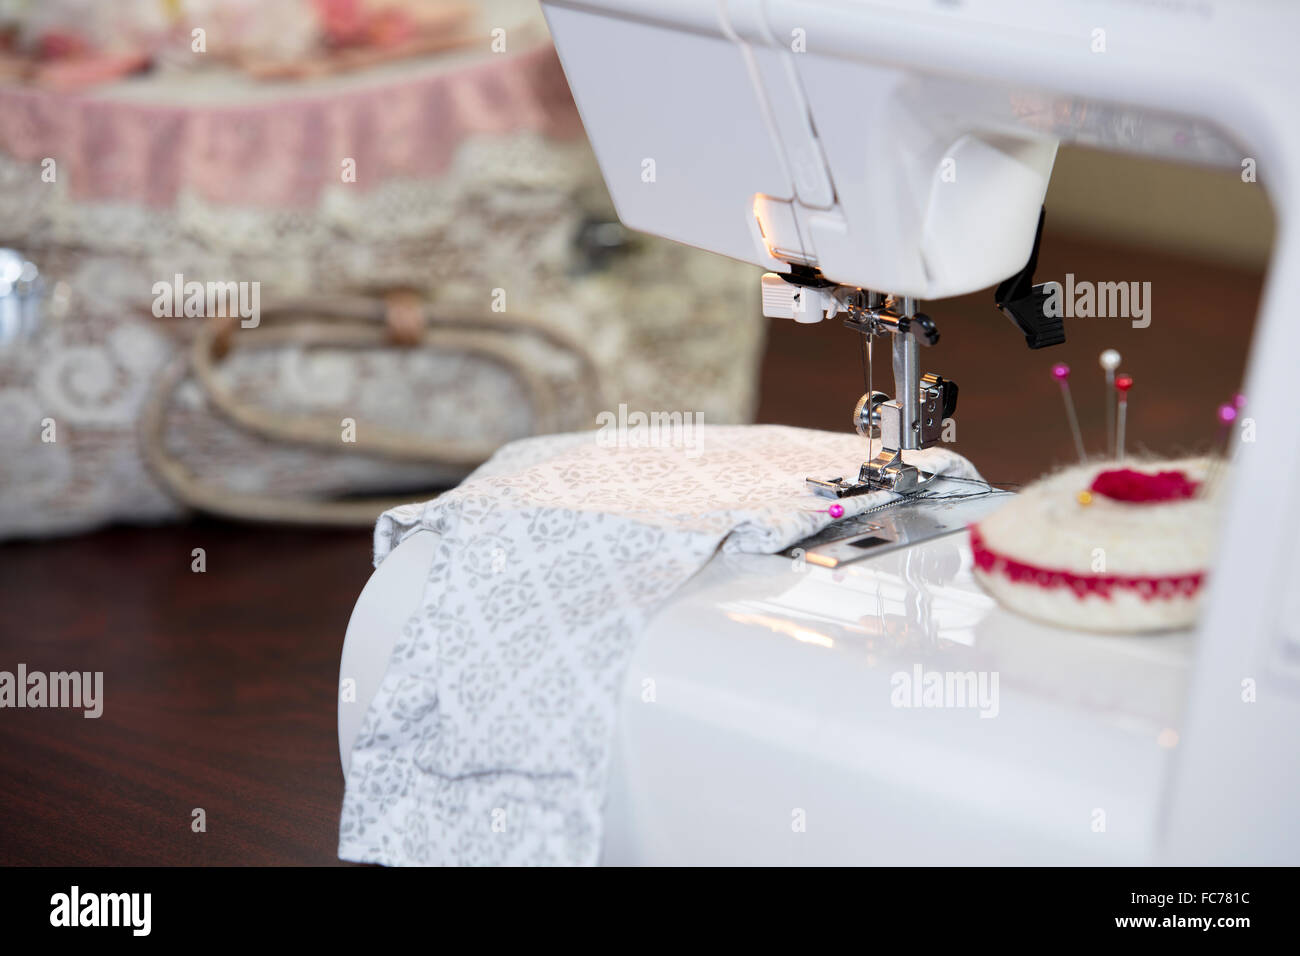 Pins And Needles Body Stockfotos & Pins And Needles Body Bilder - Alamy